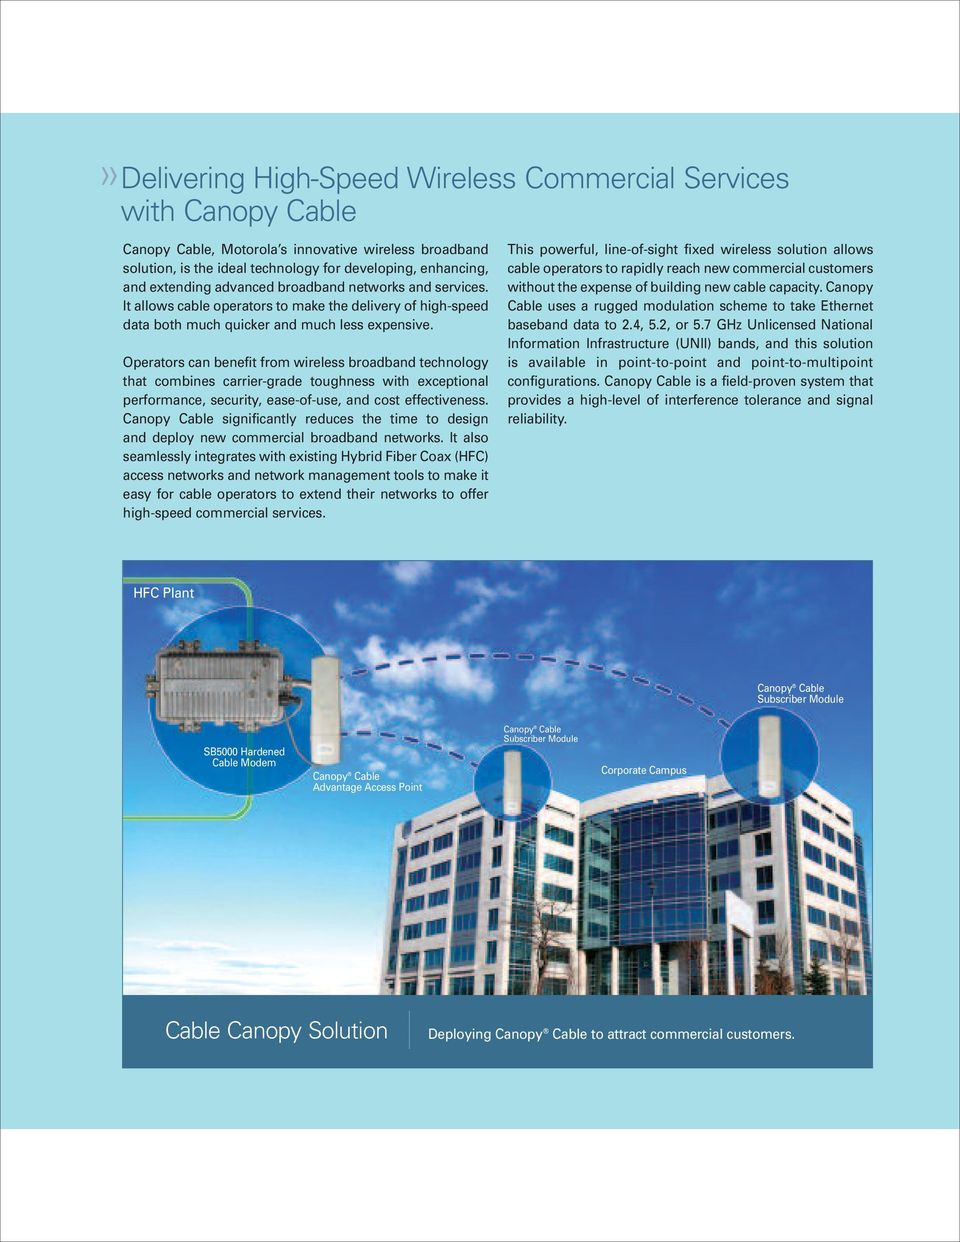 Operators can benefit from wireless broadband technology that combines carrier-grade toughness with exceptional performance, security, ease-of-use, and cost effectiveness.